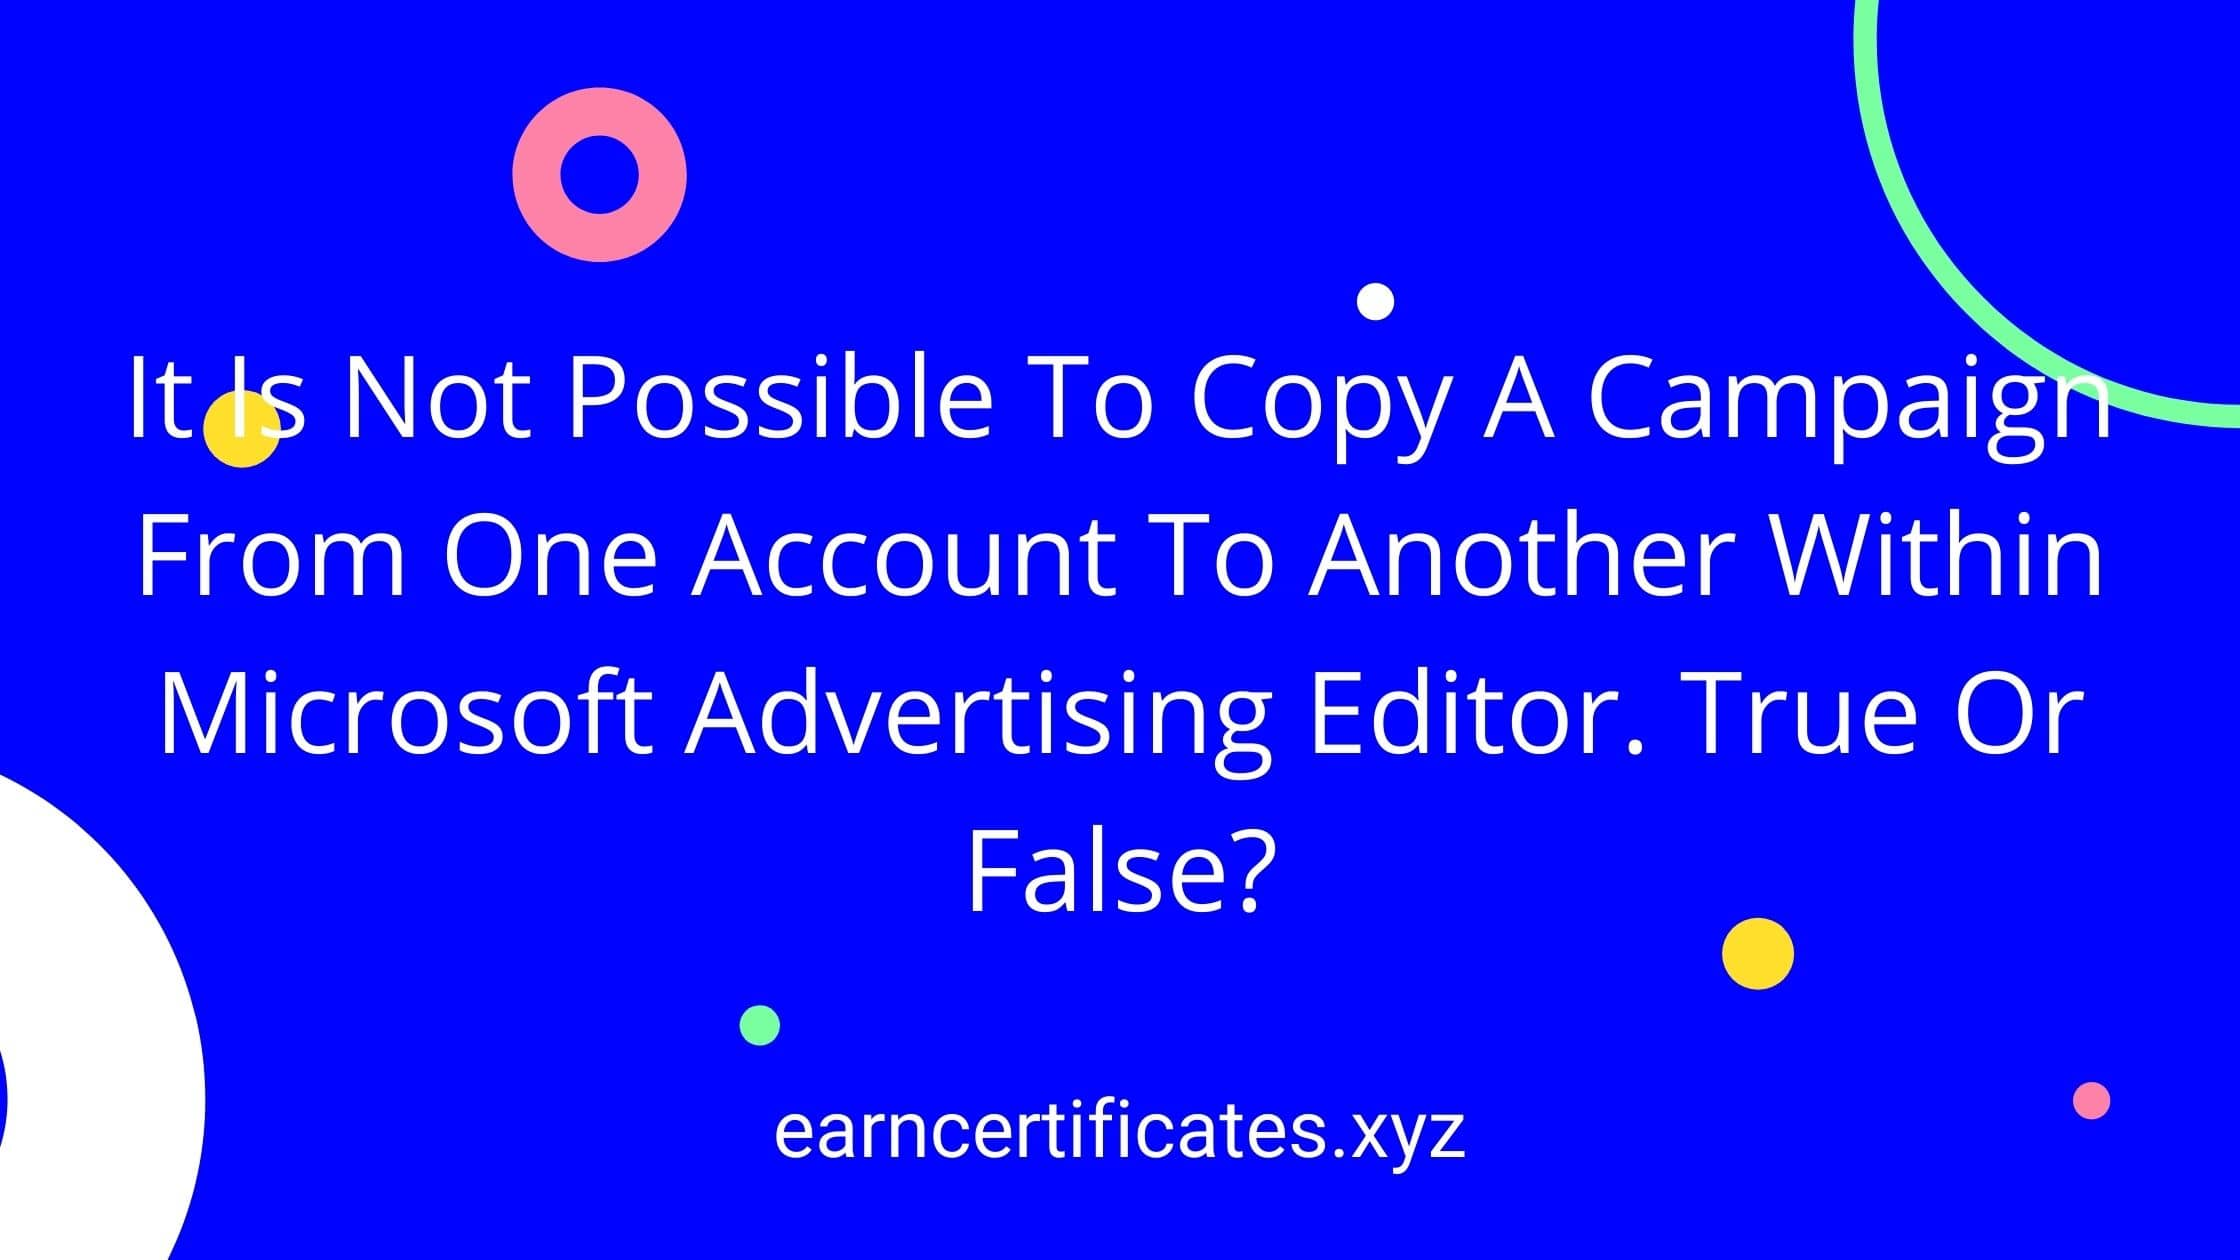 It Is Not Possible To Copy A Campaign From One Account To Another Within Microsoft Advertising Editor. True Or False?